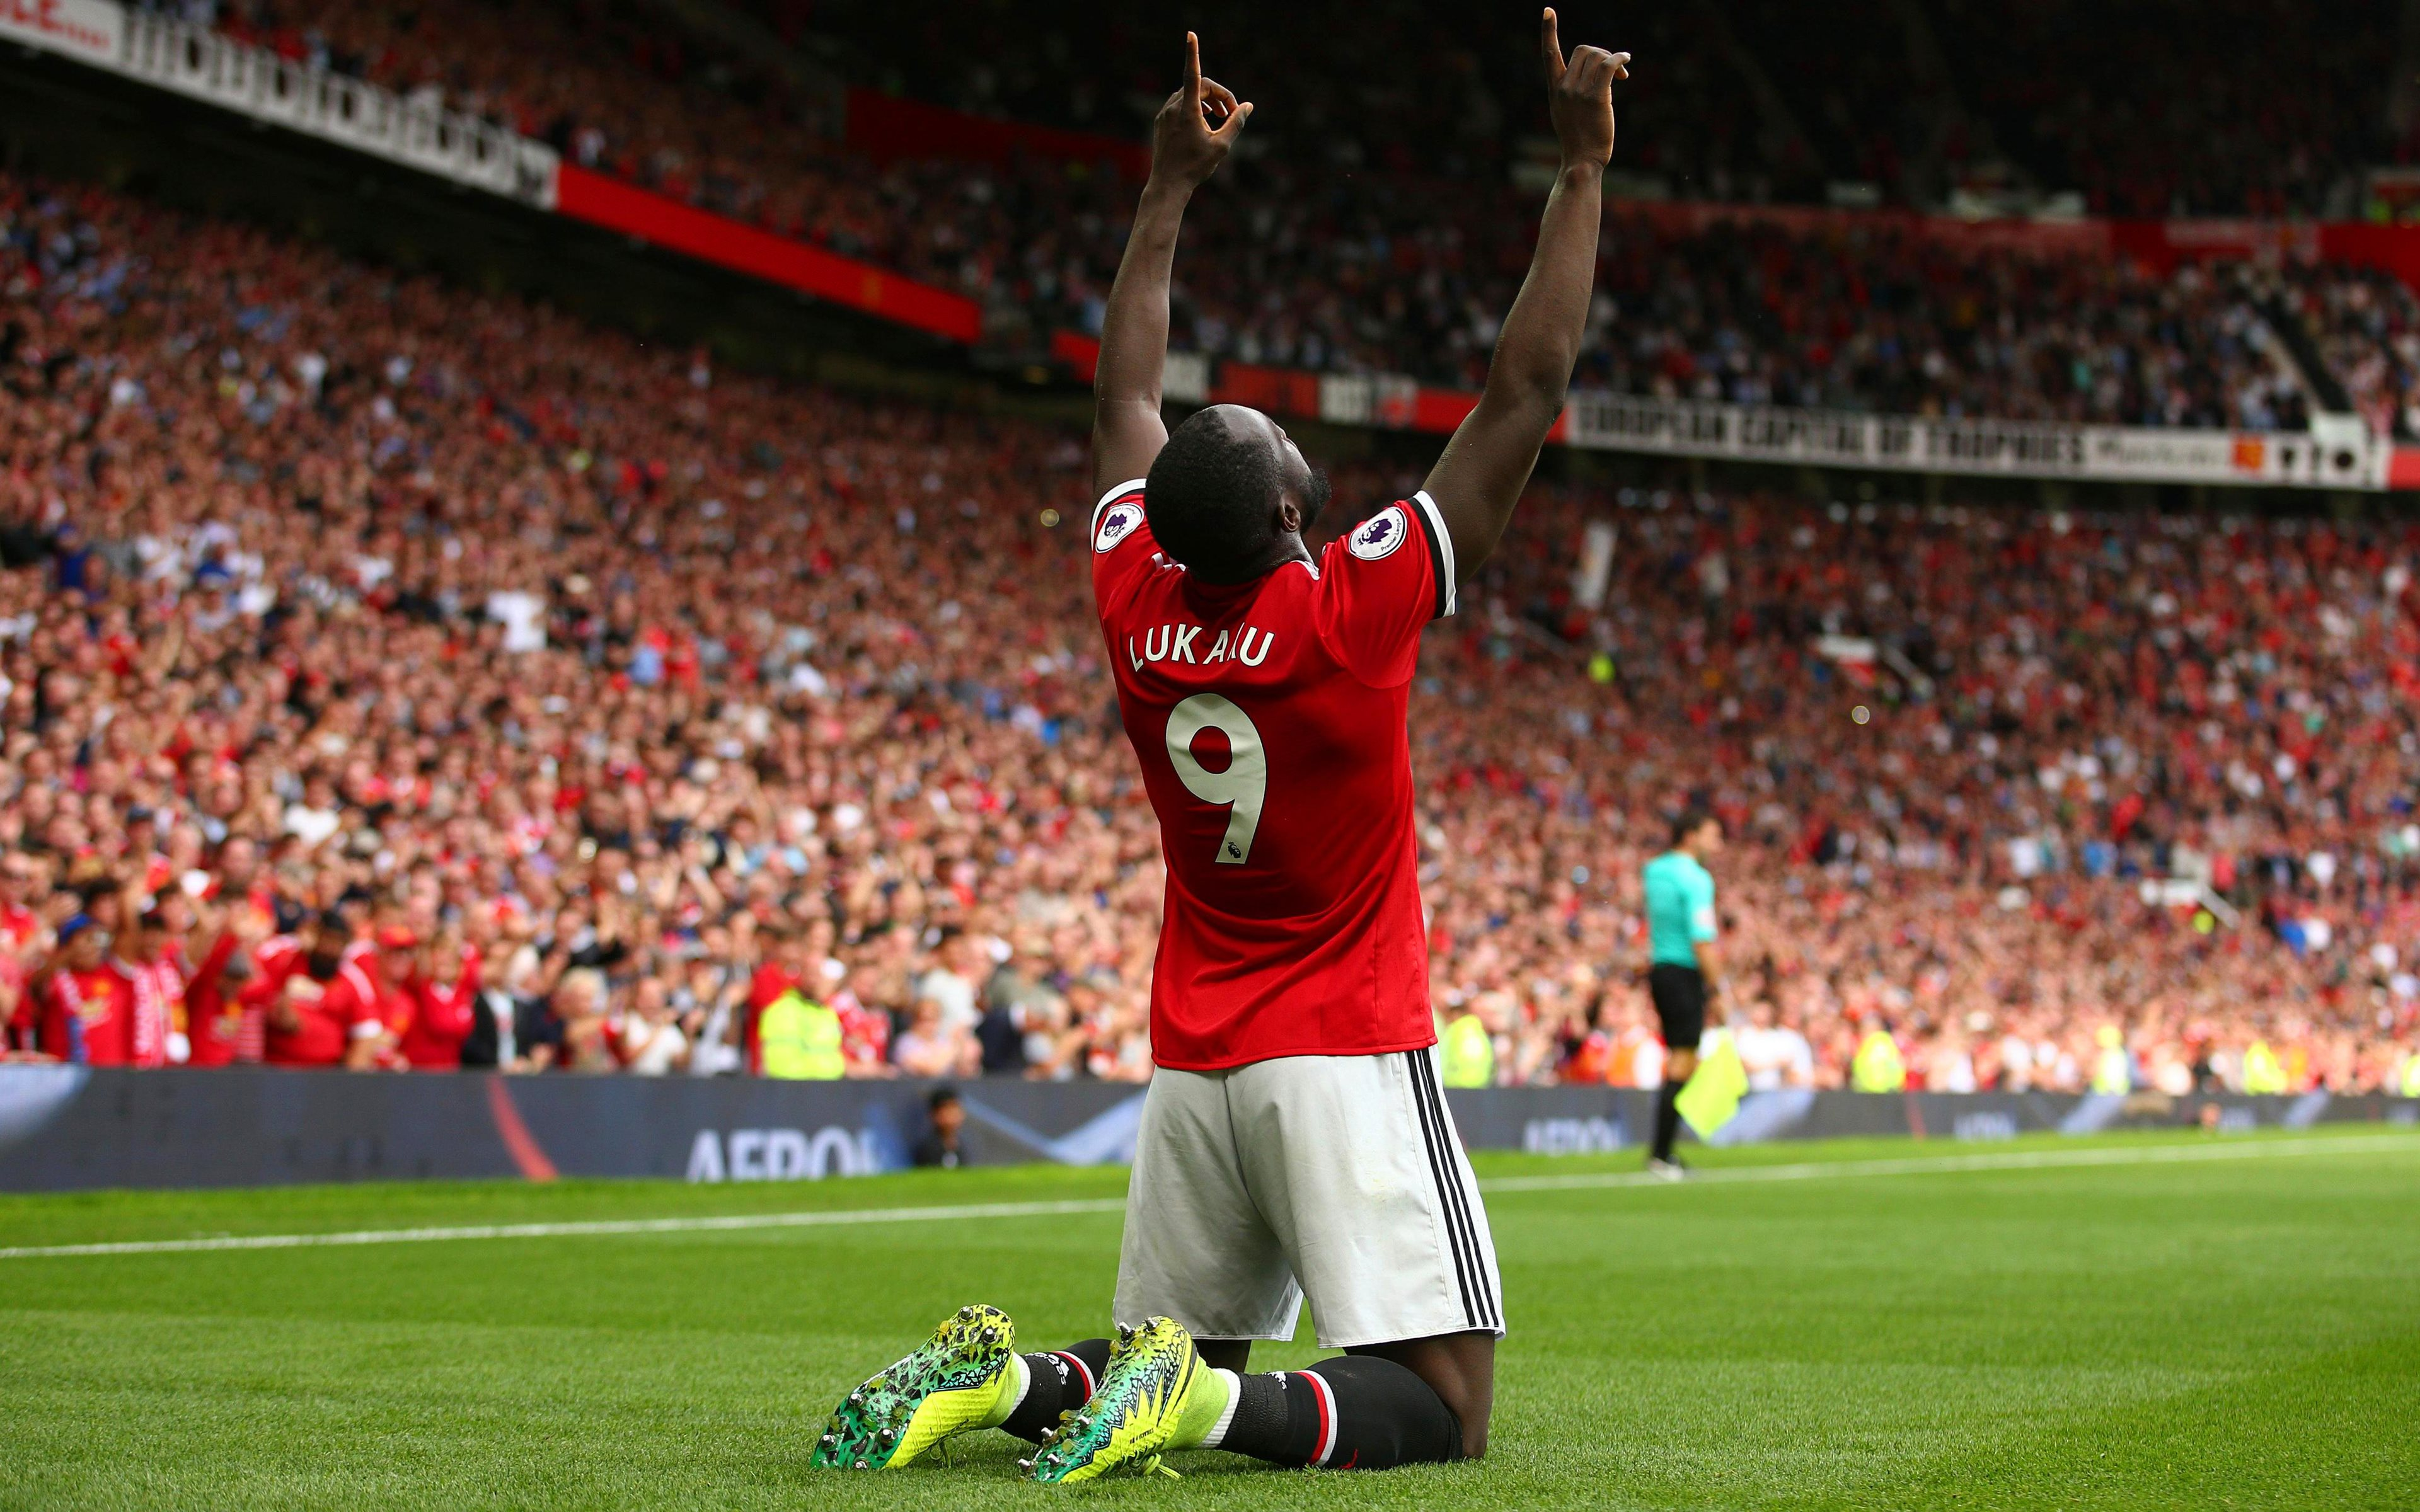 Download Wallpapers 4k Romelu Lukaku Mu Soccer Romelu